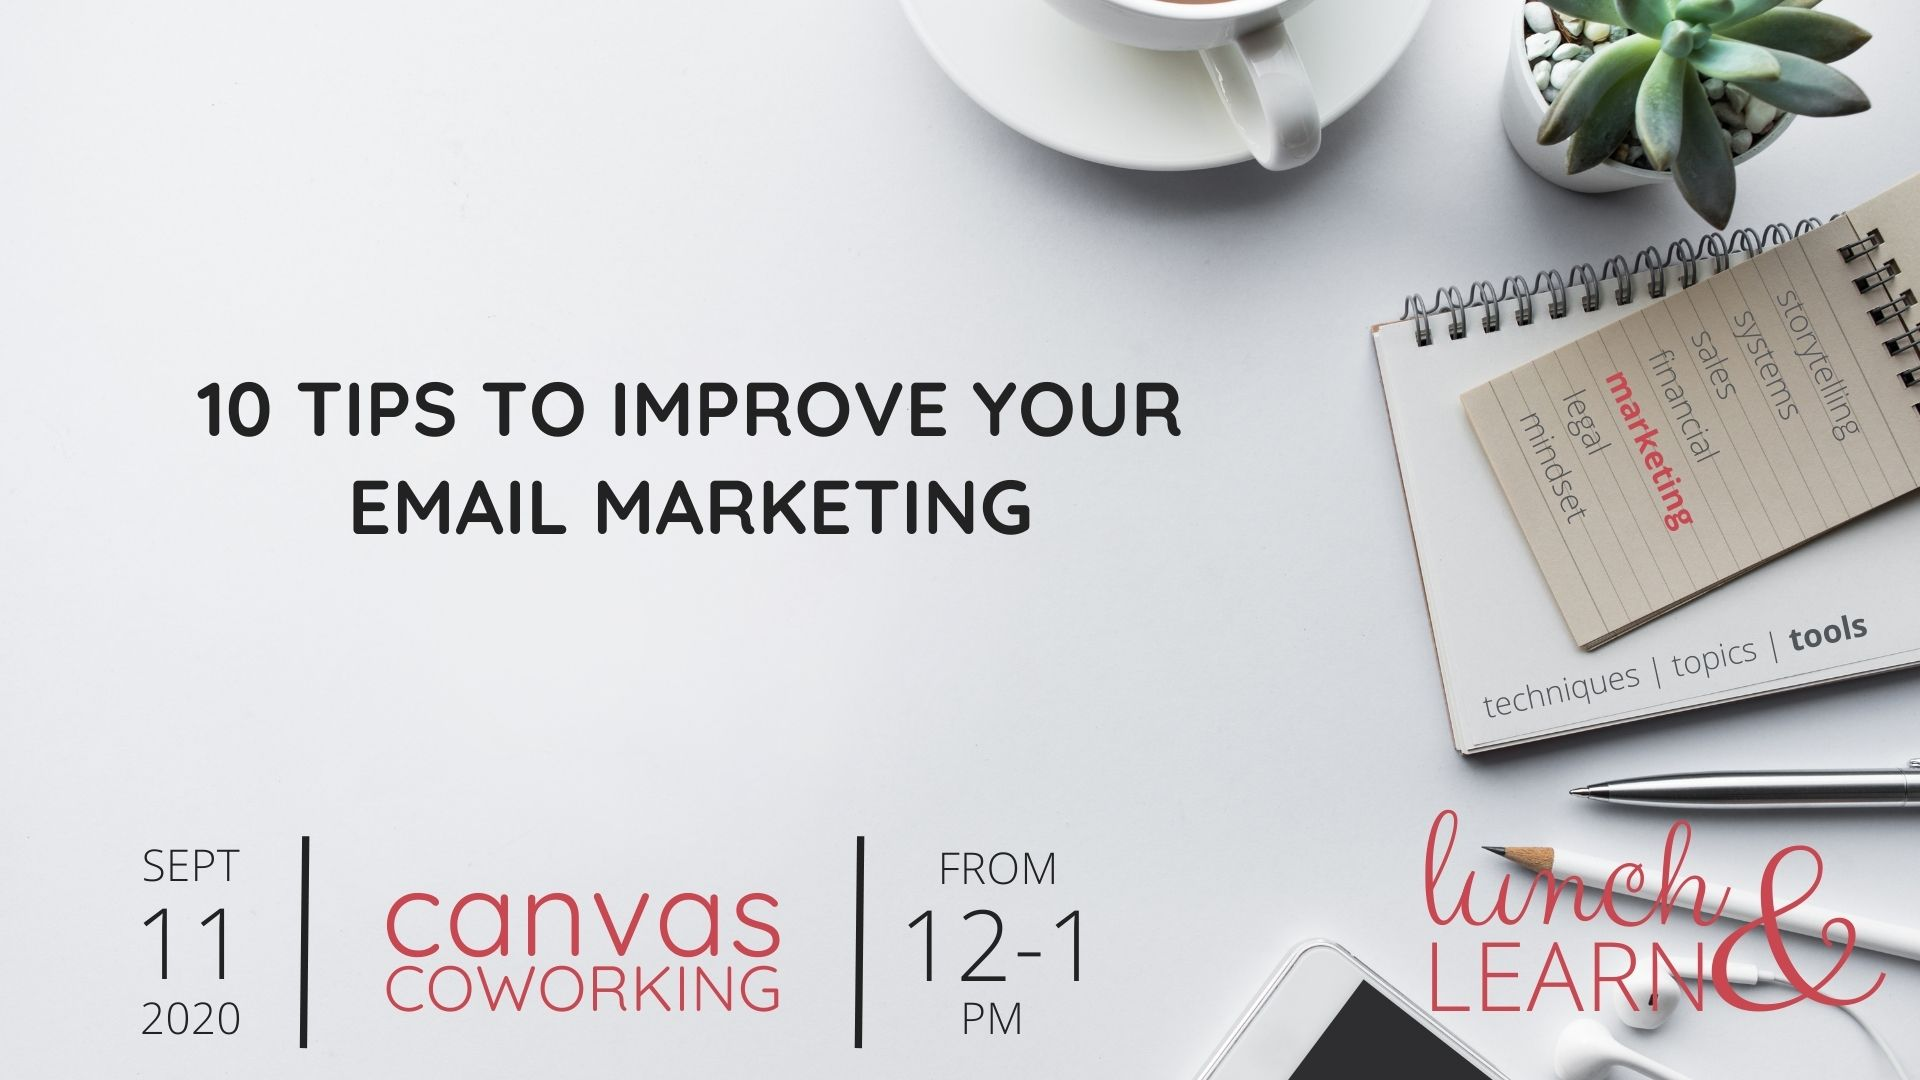 Lunch and Learn - 10 tips for email marketing - Friday 11 Sept 2020 - Canvas Coworking